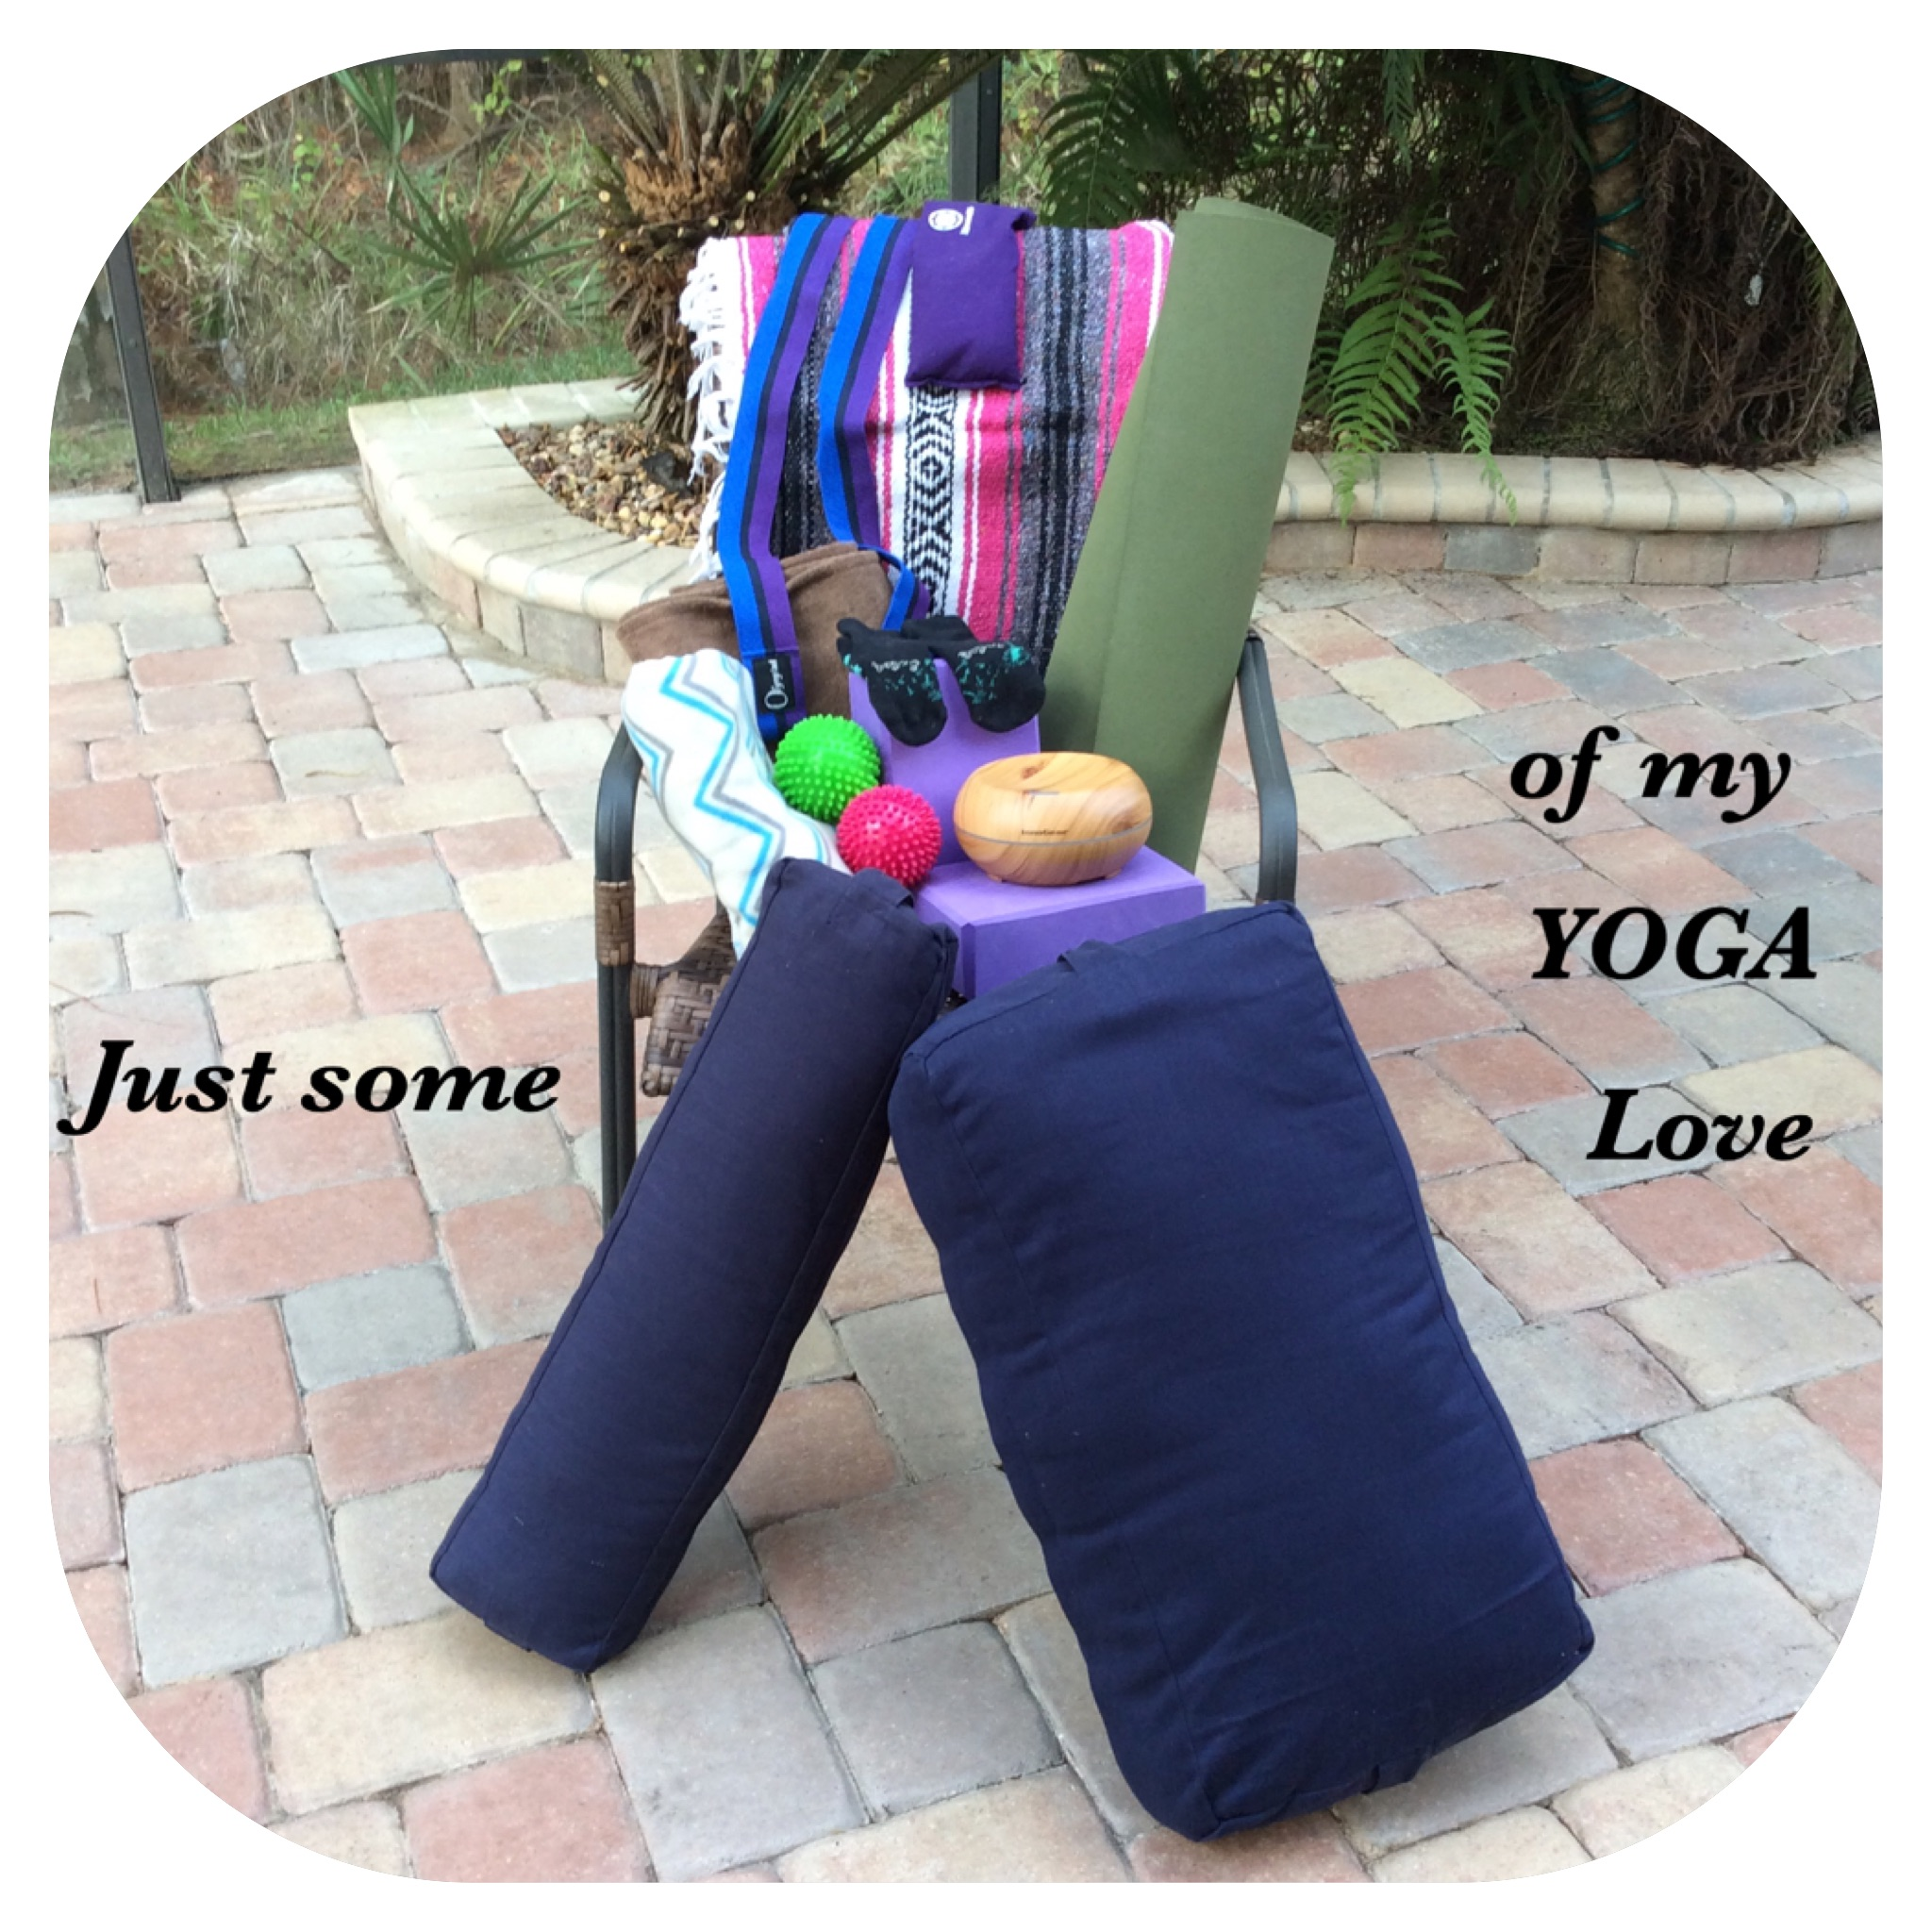 yoga-love-equipment